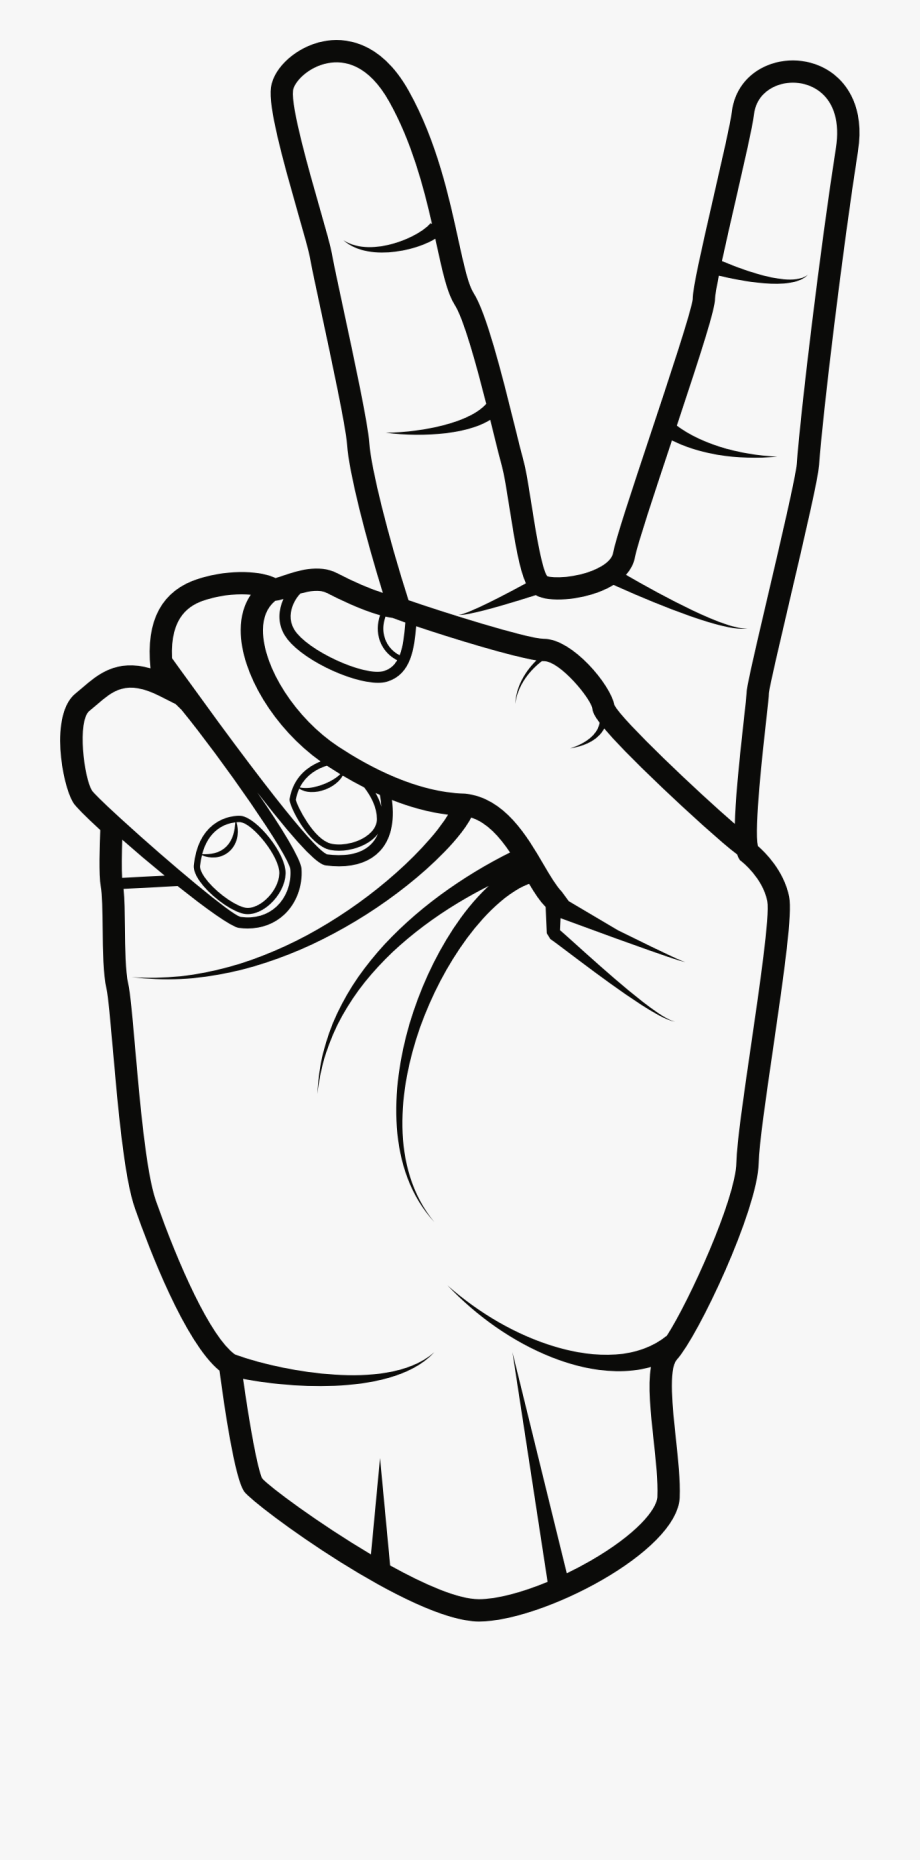 Sign black and white. Hand clipart peace